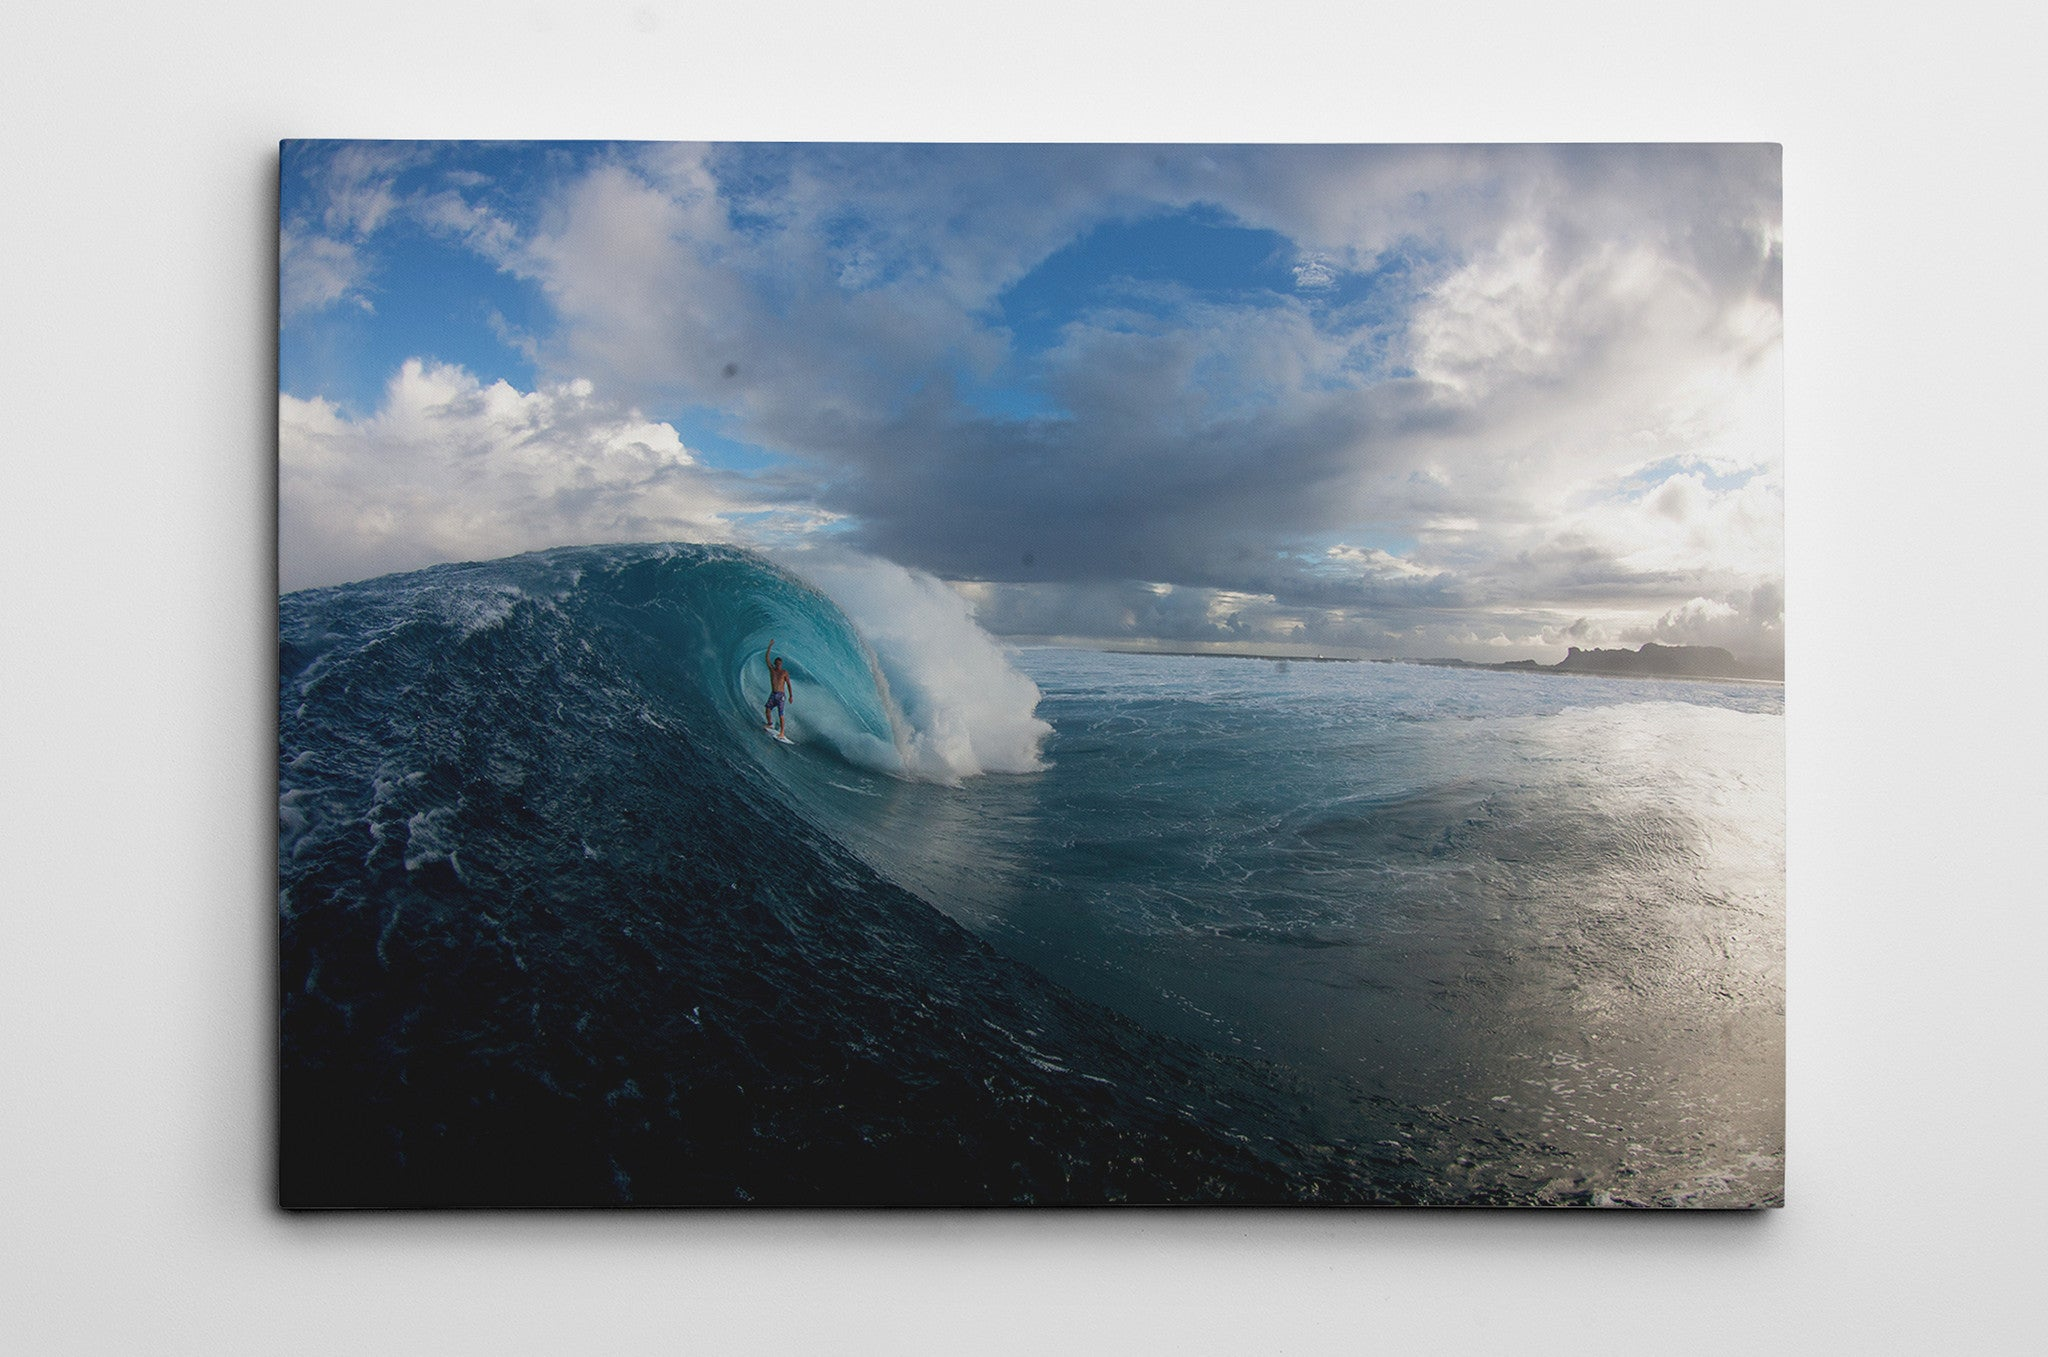 Swell and Sky Canvas Print Dave Nelson Signature Series - Cal31.com